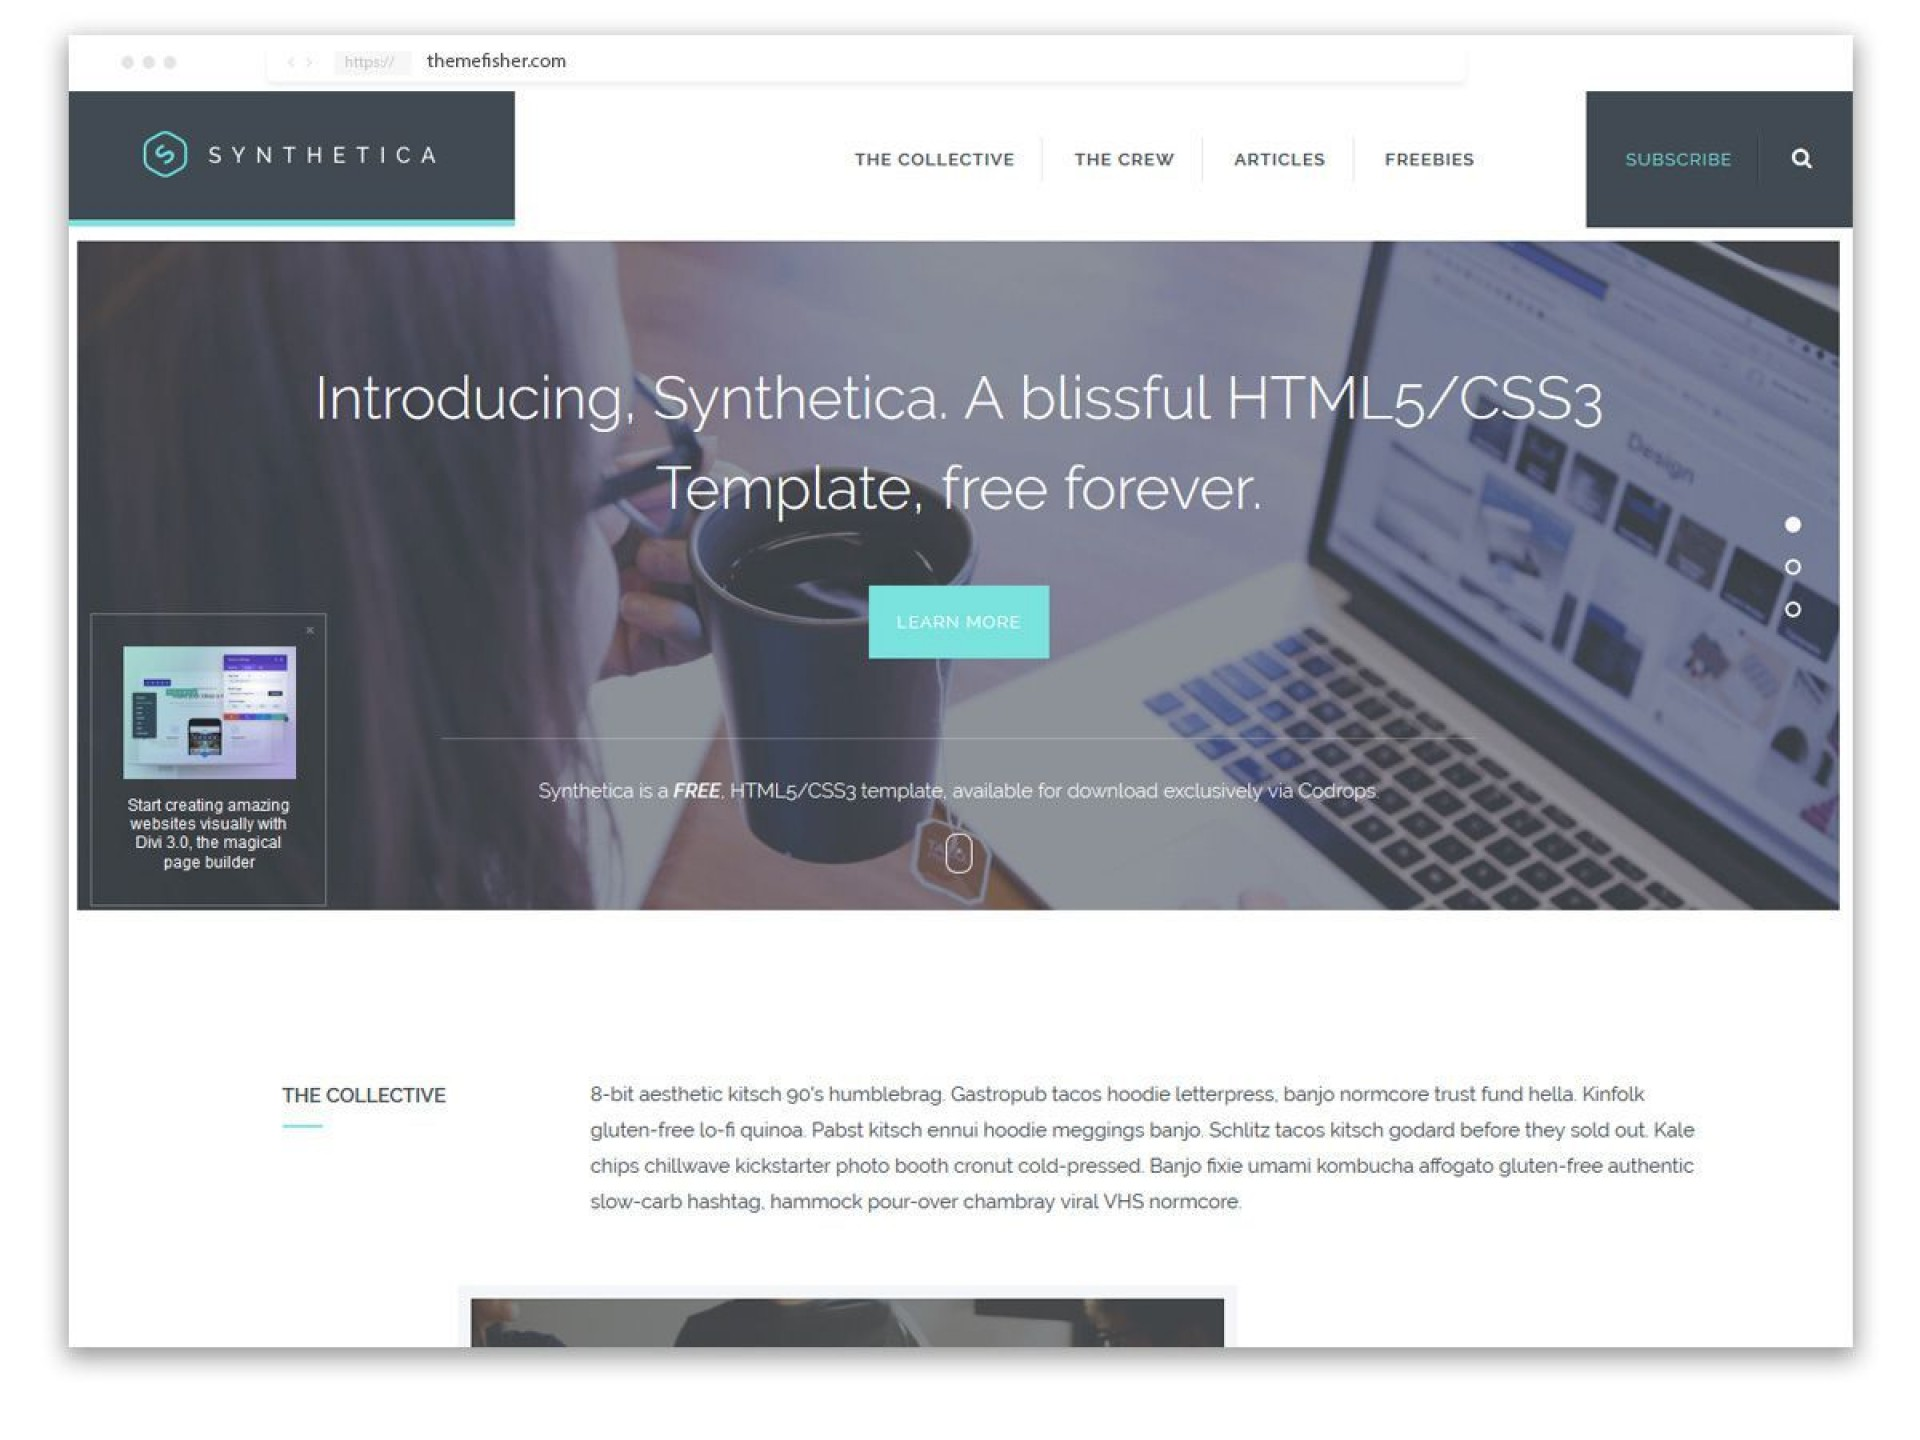 002 Remarkable Website Template Free Download Highest Quality  Online Shopping Colorlib New Wordpres Html5 For Busines1920